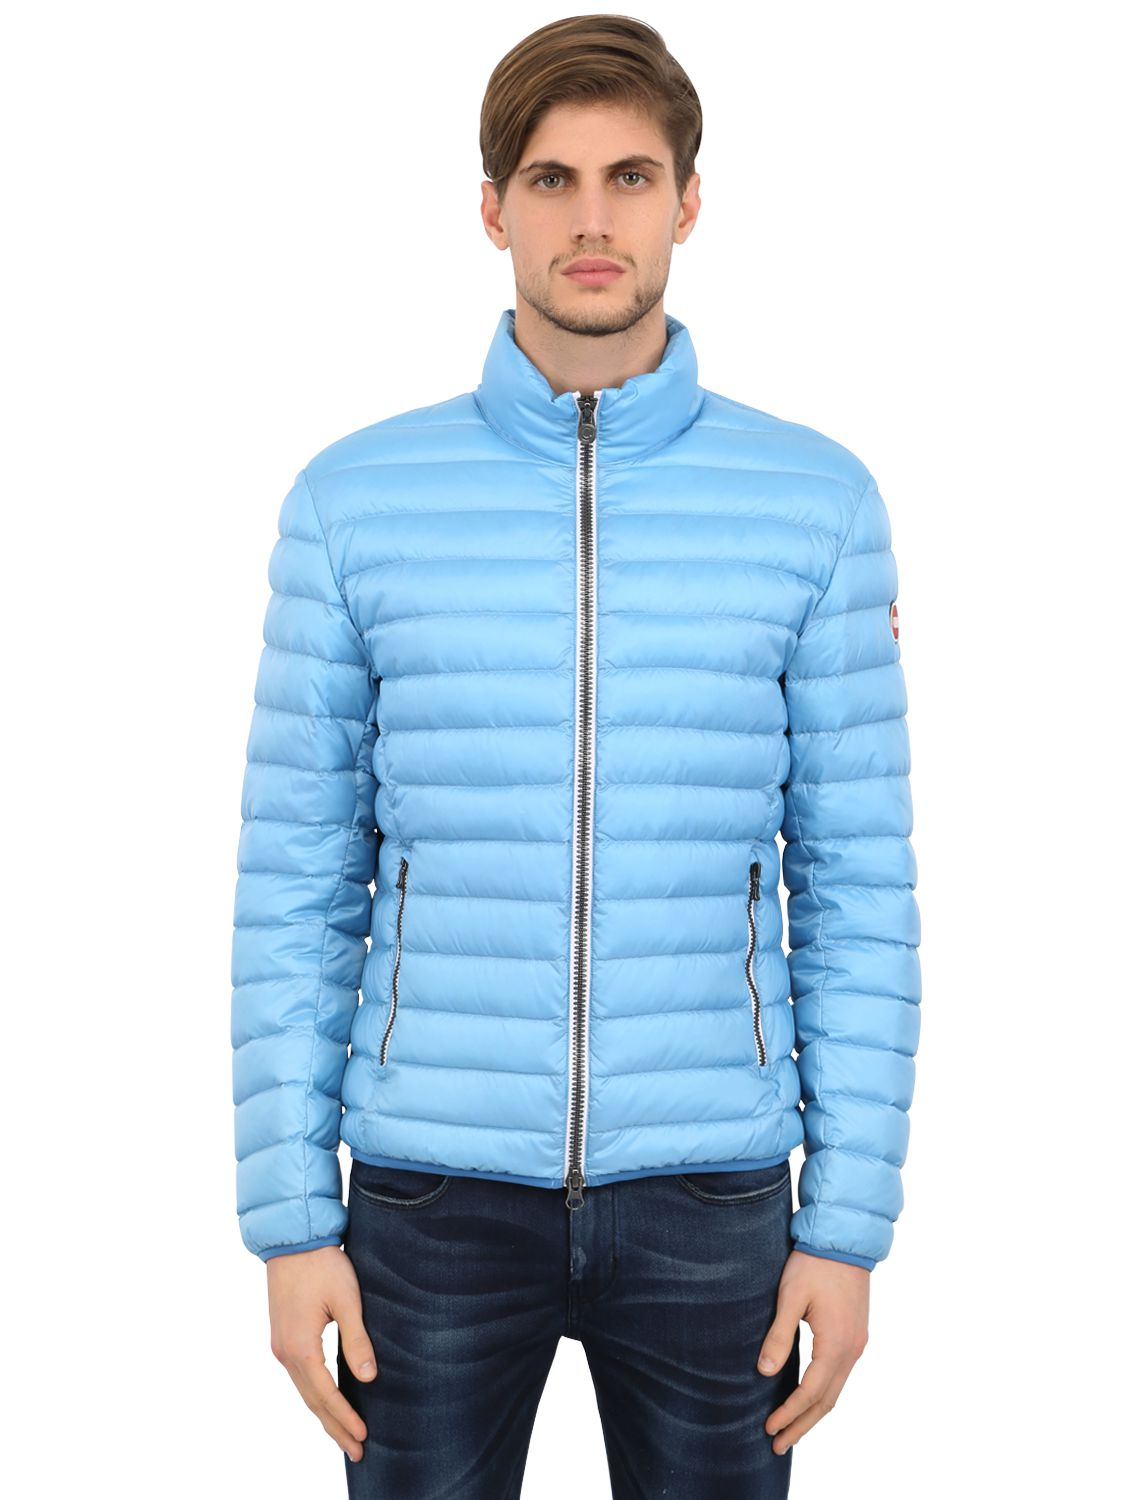 Lyst - Colmar Quilted Light Nylon Down Jacket in Blue for Men 9f8095636